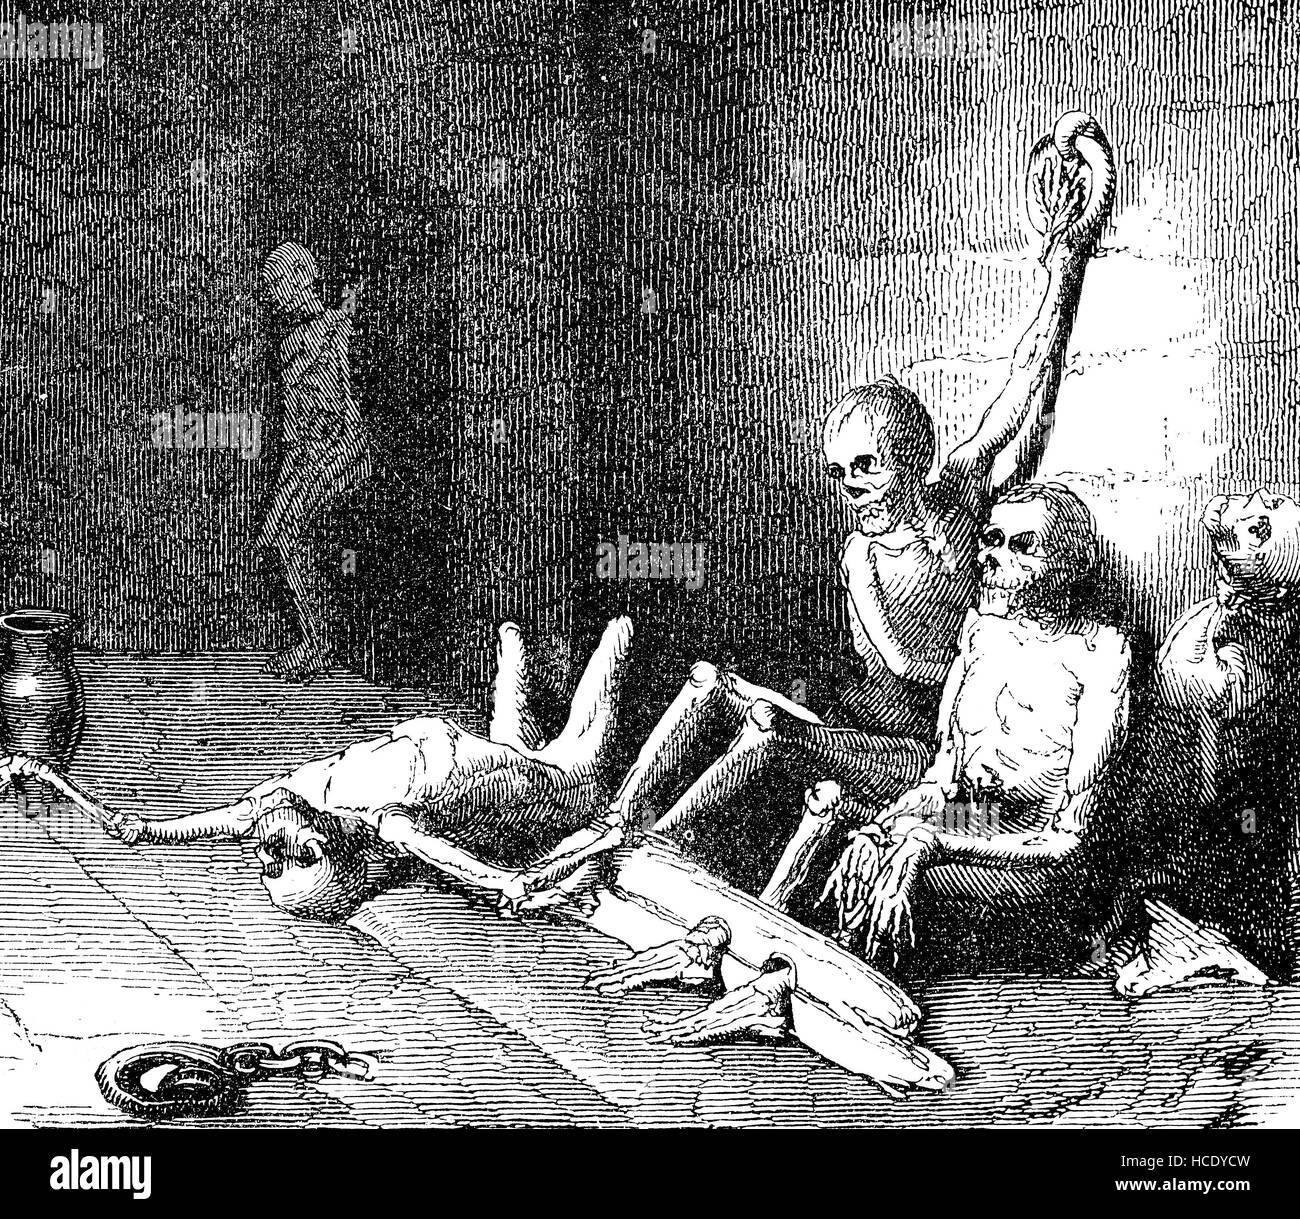 Torture chamber in Rome during the persecution of Christians, the story of the ancient Rome, roman Empire, Italy - Stock Image